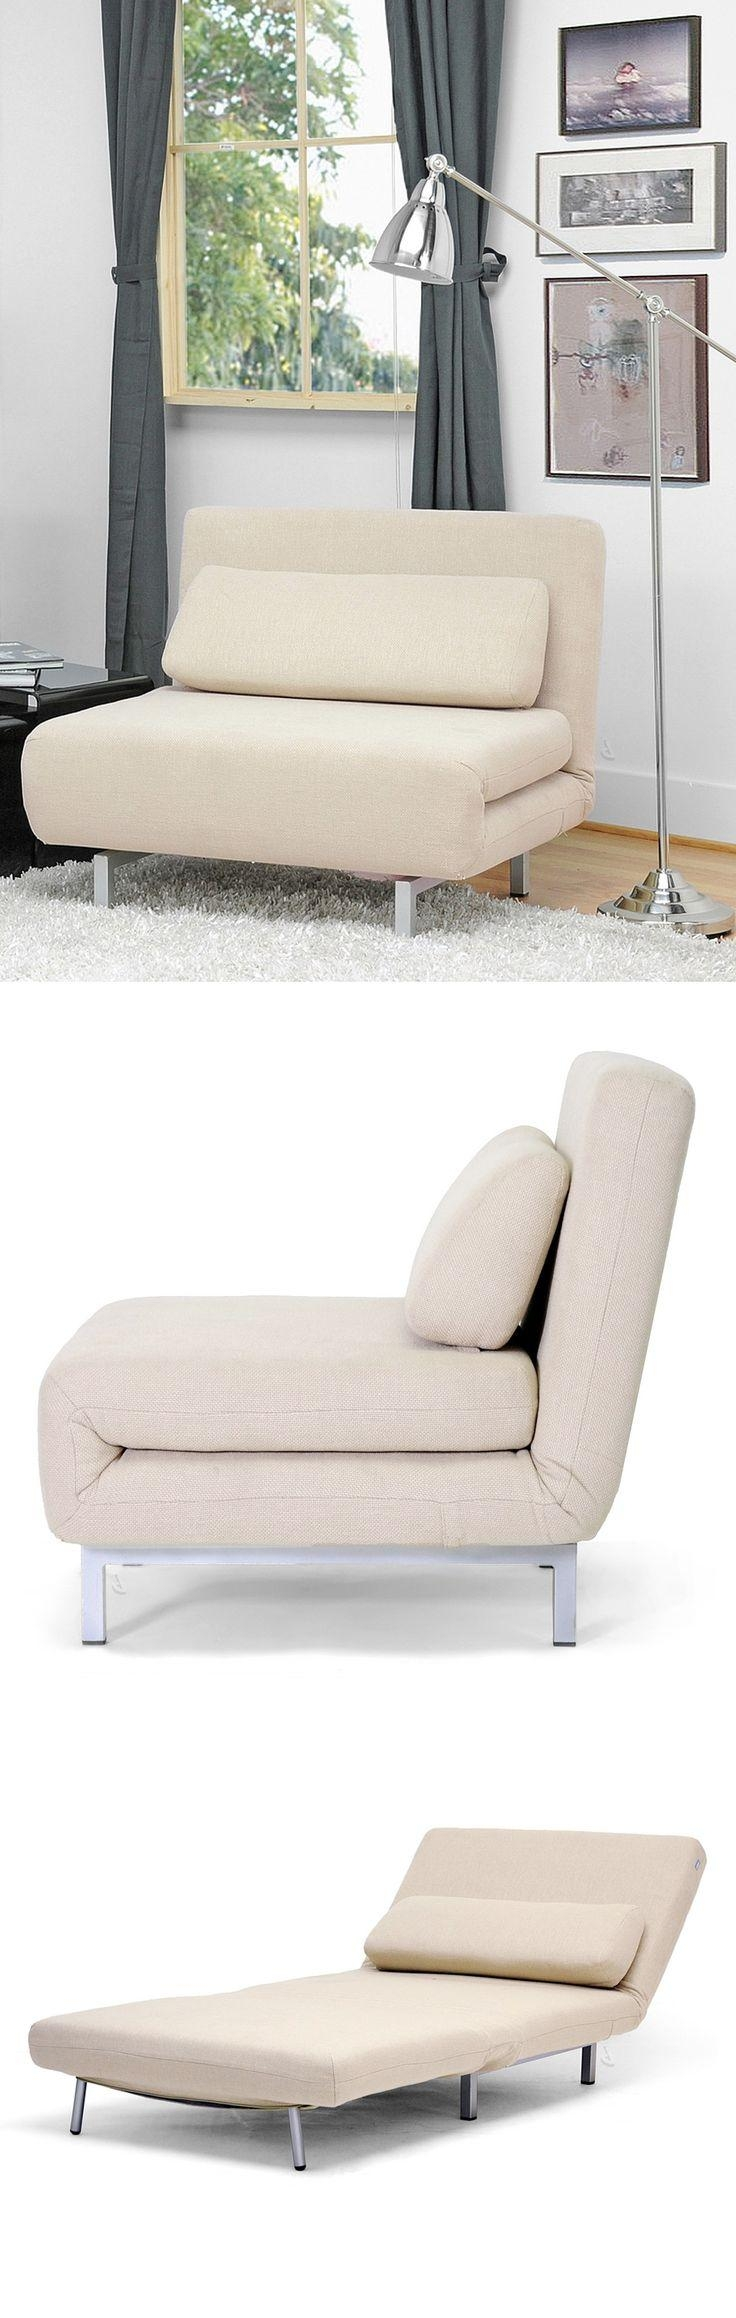 Best 25+ Sleeper Chair Ideas On Pinterest | Sleeper Chair Bed Pertaining To Twin Sofa Chairs (Image 1 of 20)